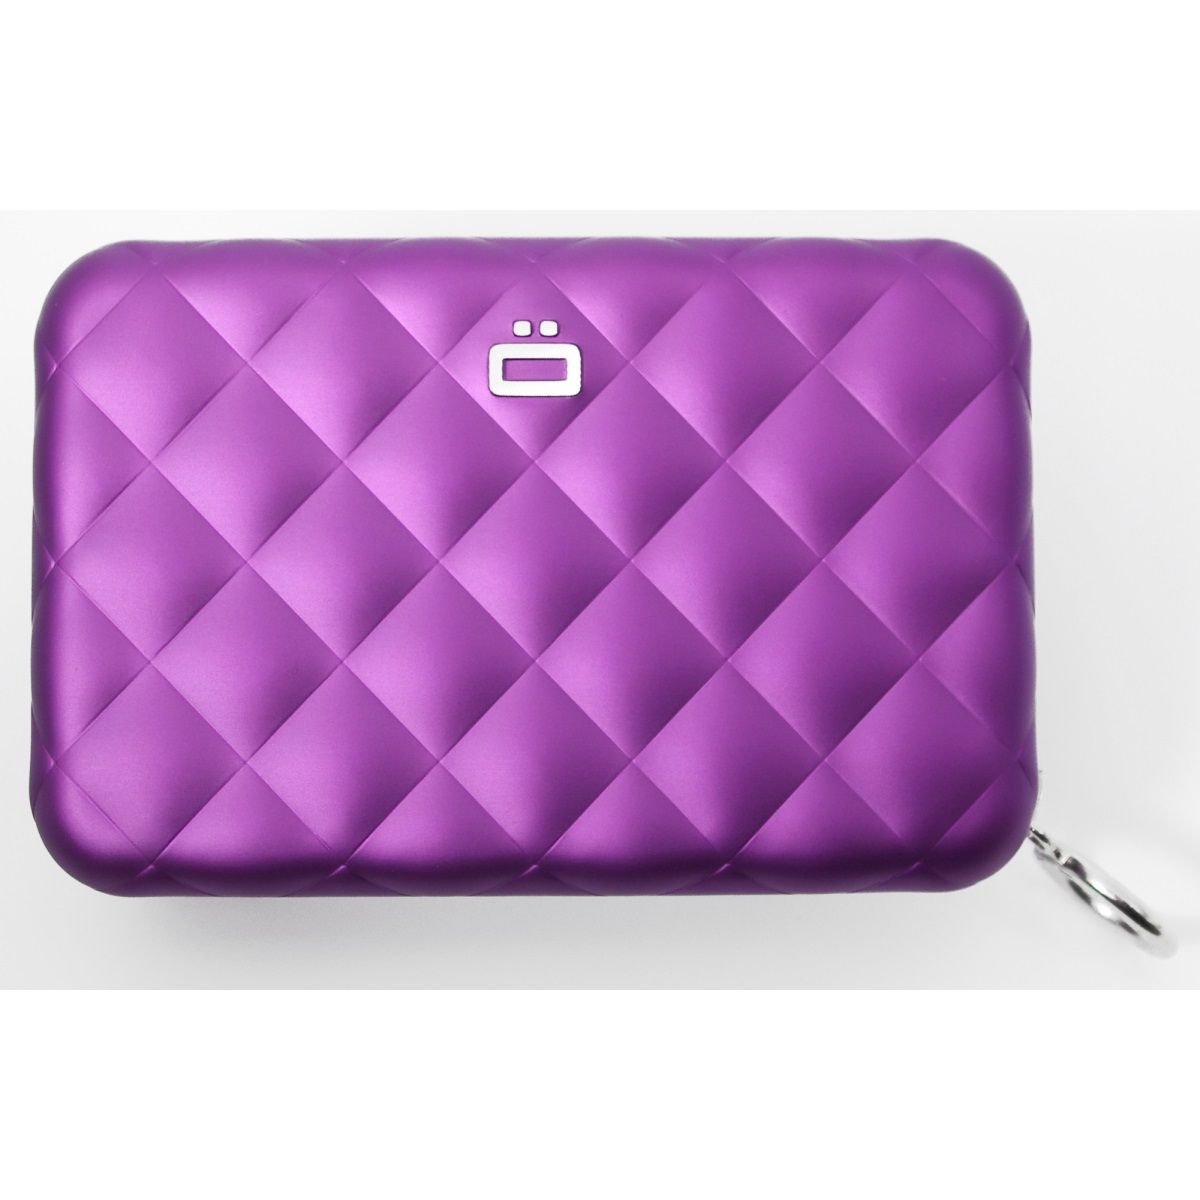 OGON Aluminum Wallet Quilted Zipper - Purple